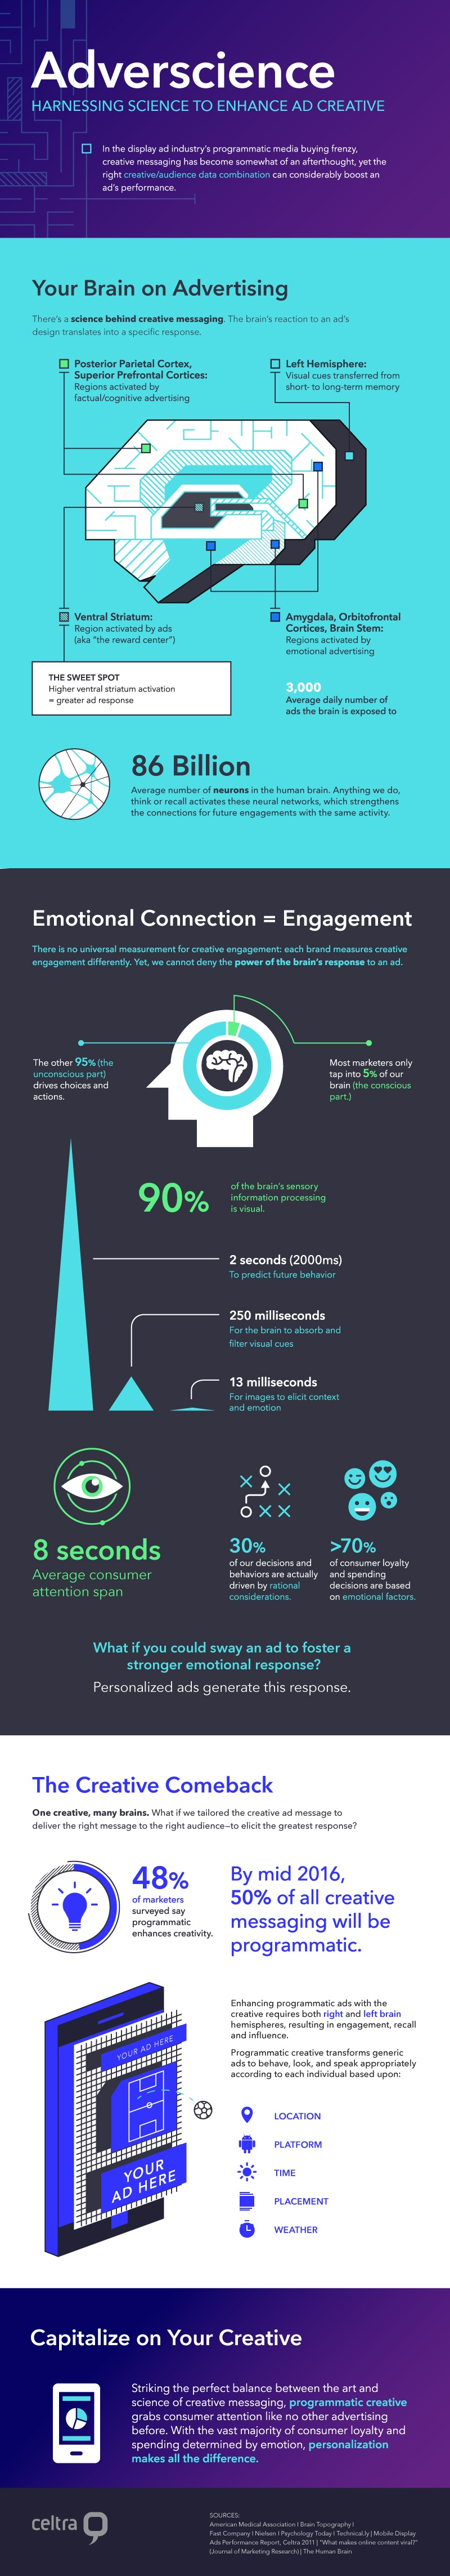 adverscience the science of brain advertising infographic